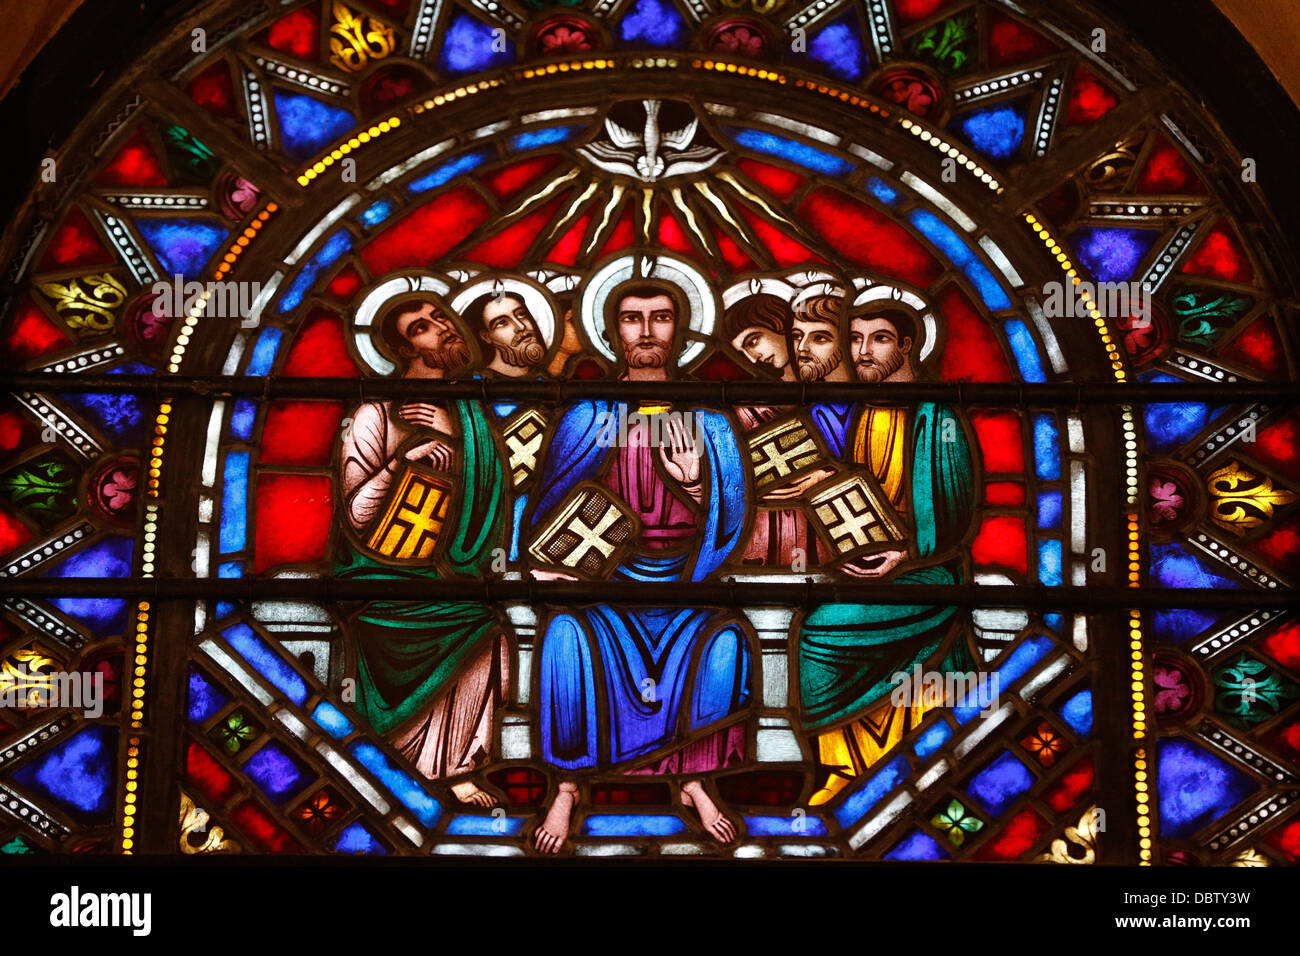 Stained Glass Window Of Jesus And The 12 Apostles, St